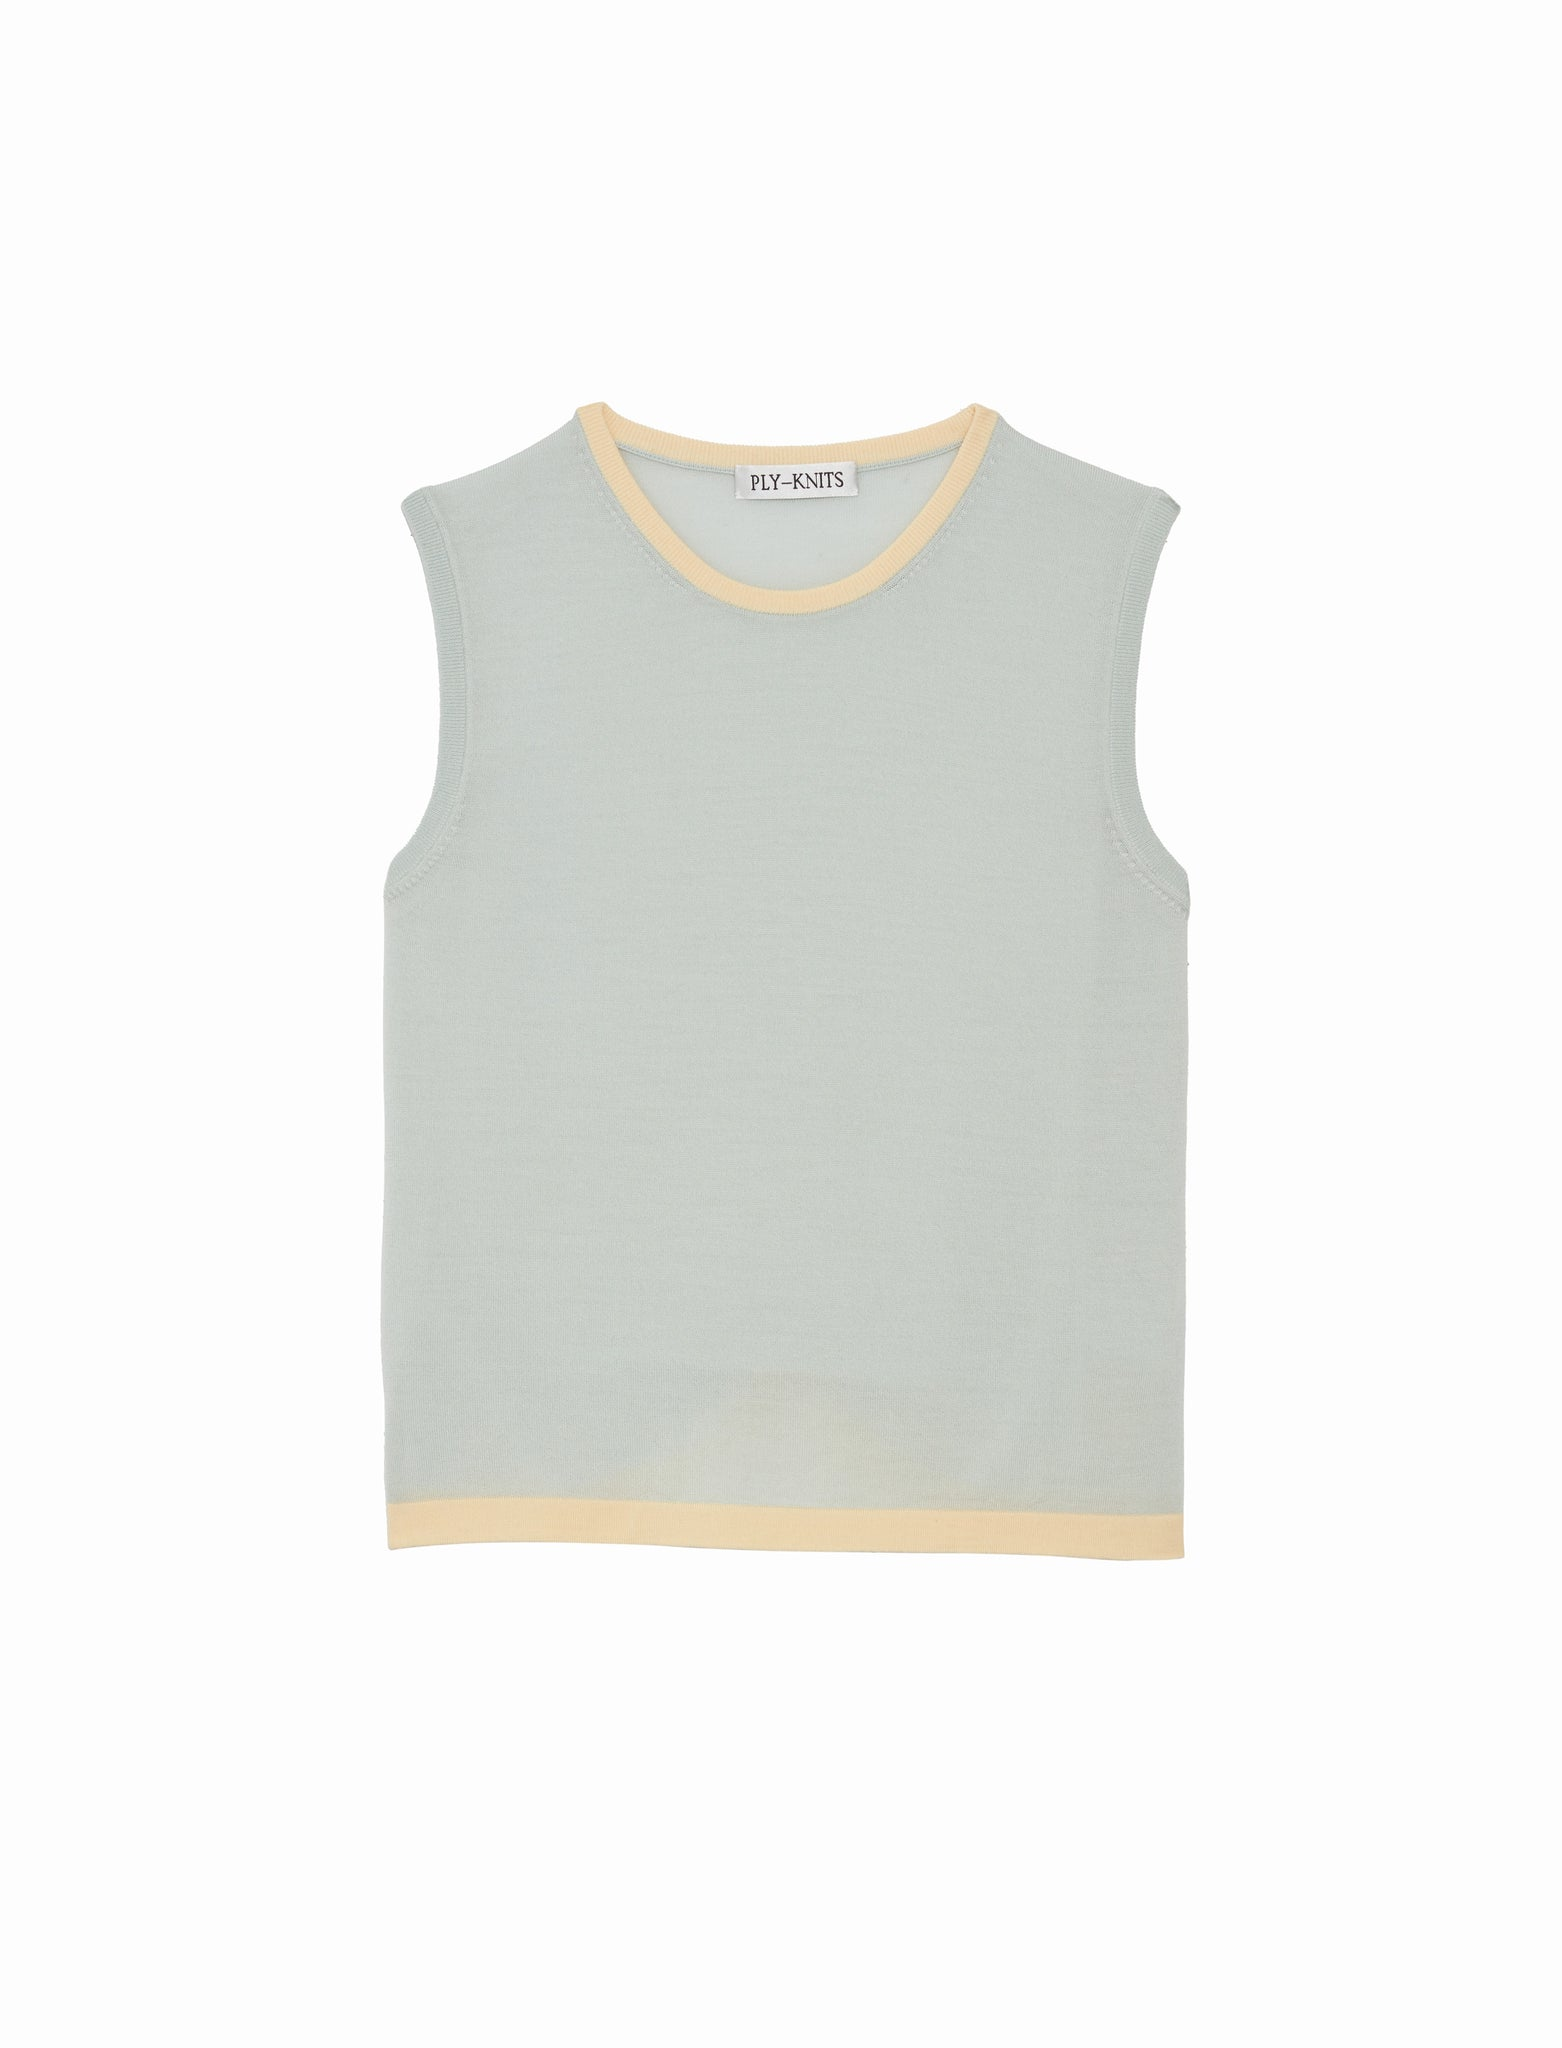 EMIL TOP IN NEPTUNE MINT